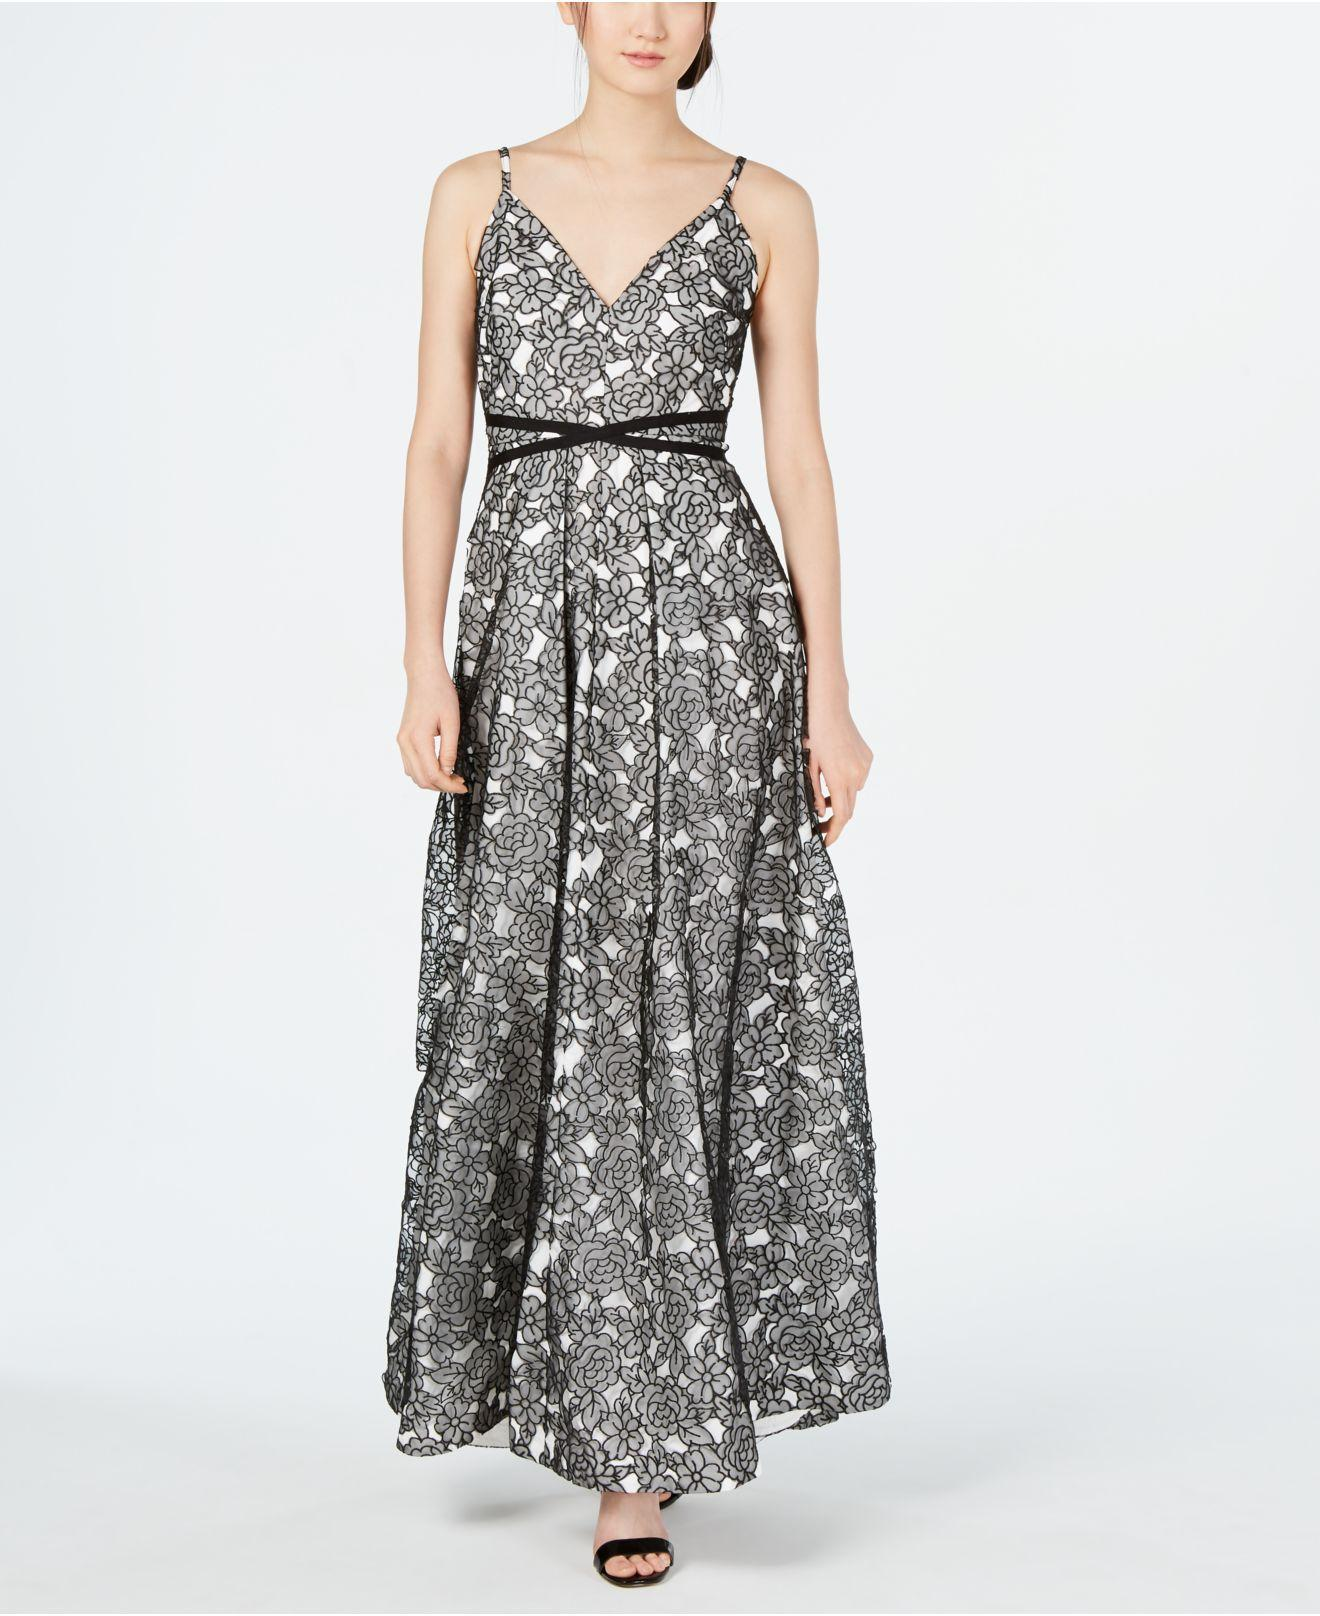 88922dd324a3 Calvin Klein Floral Lace Gown in Black - Lyst